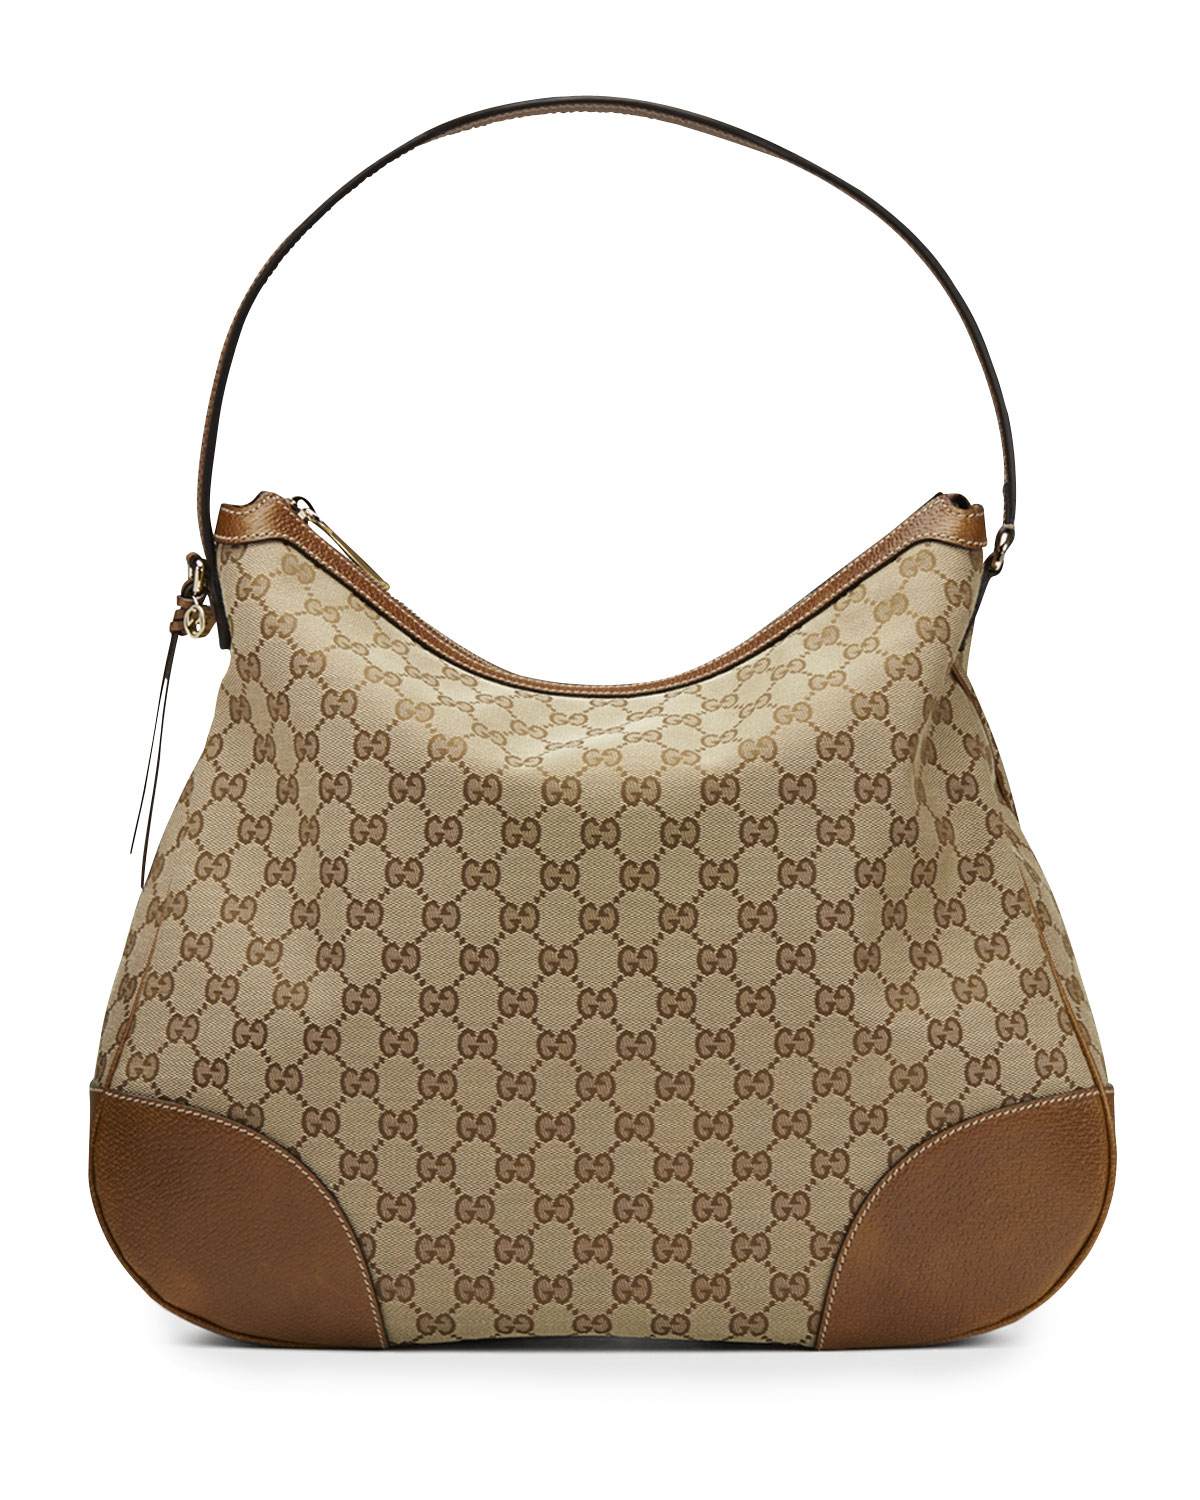 Gucci Bree Original Gg Canvas Hobo Bag in Brown | Lyst